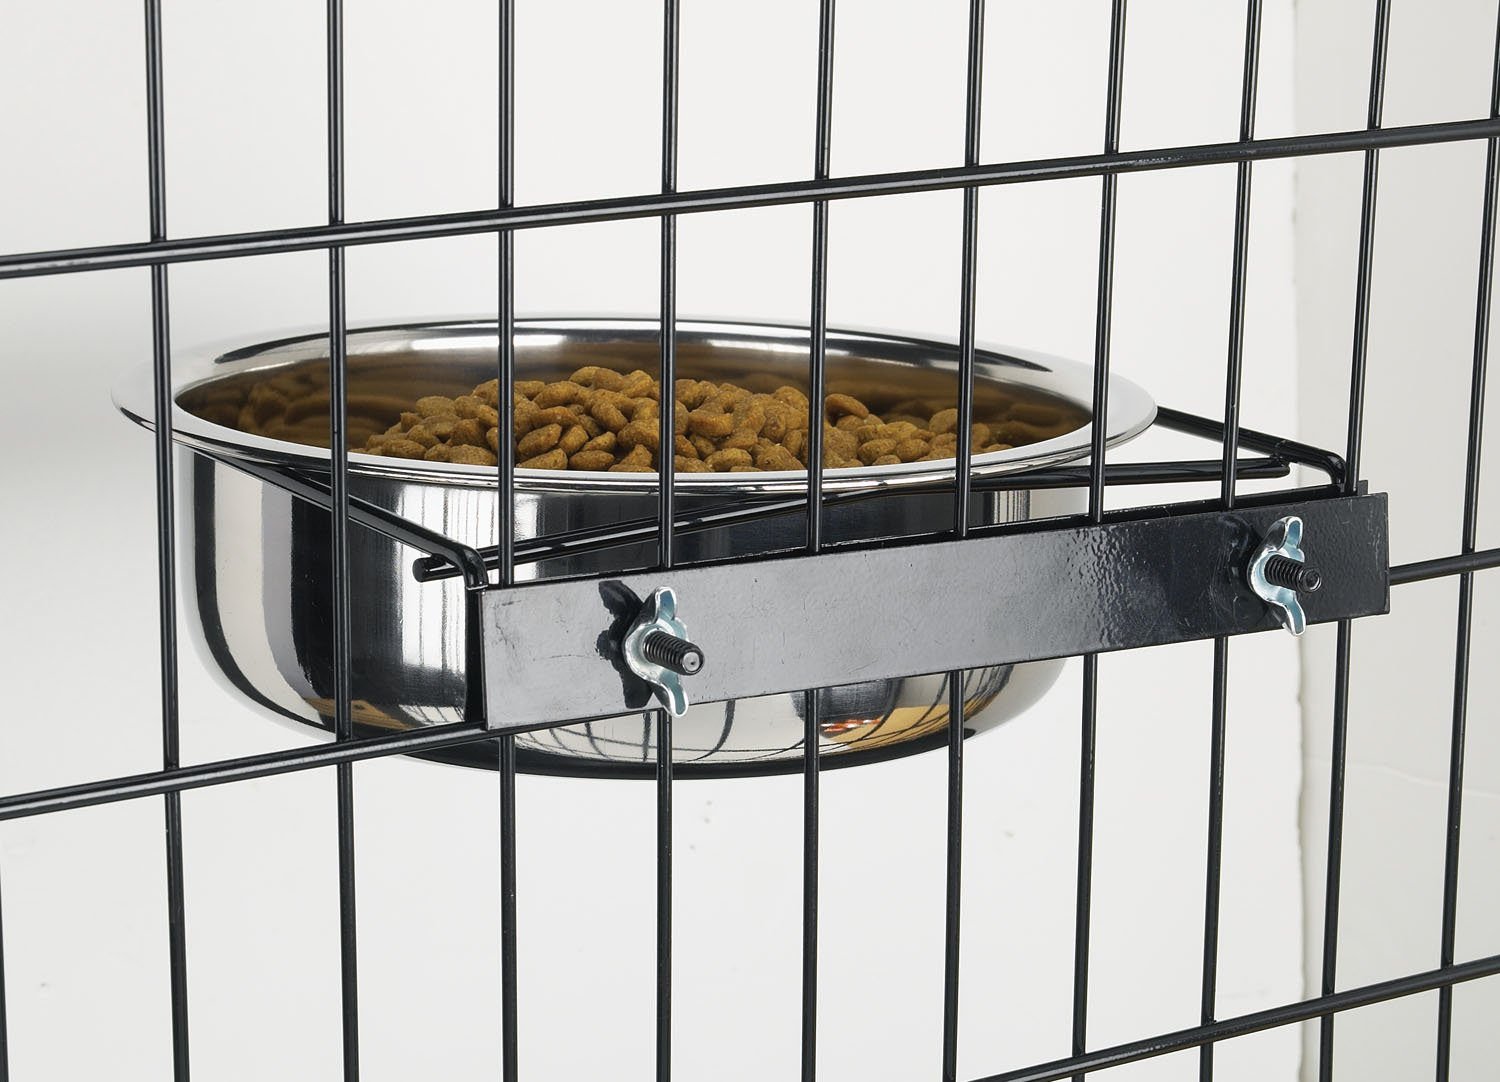 Pro Select Stainless Steel Coop Cups — Versatile Coop Cups for Pet and Animal Cages, 64-Ounce by Pro Select (Image #2)